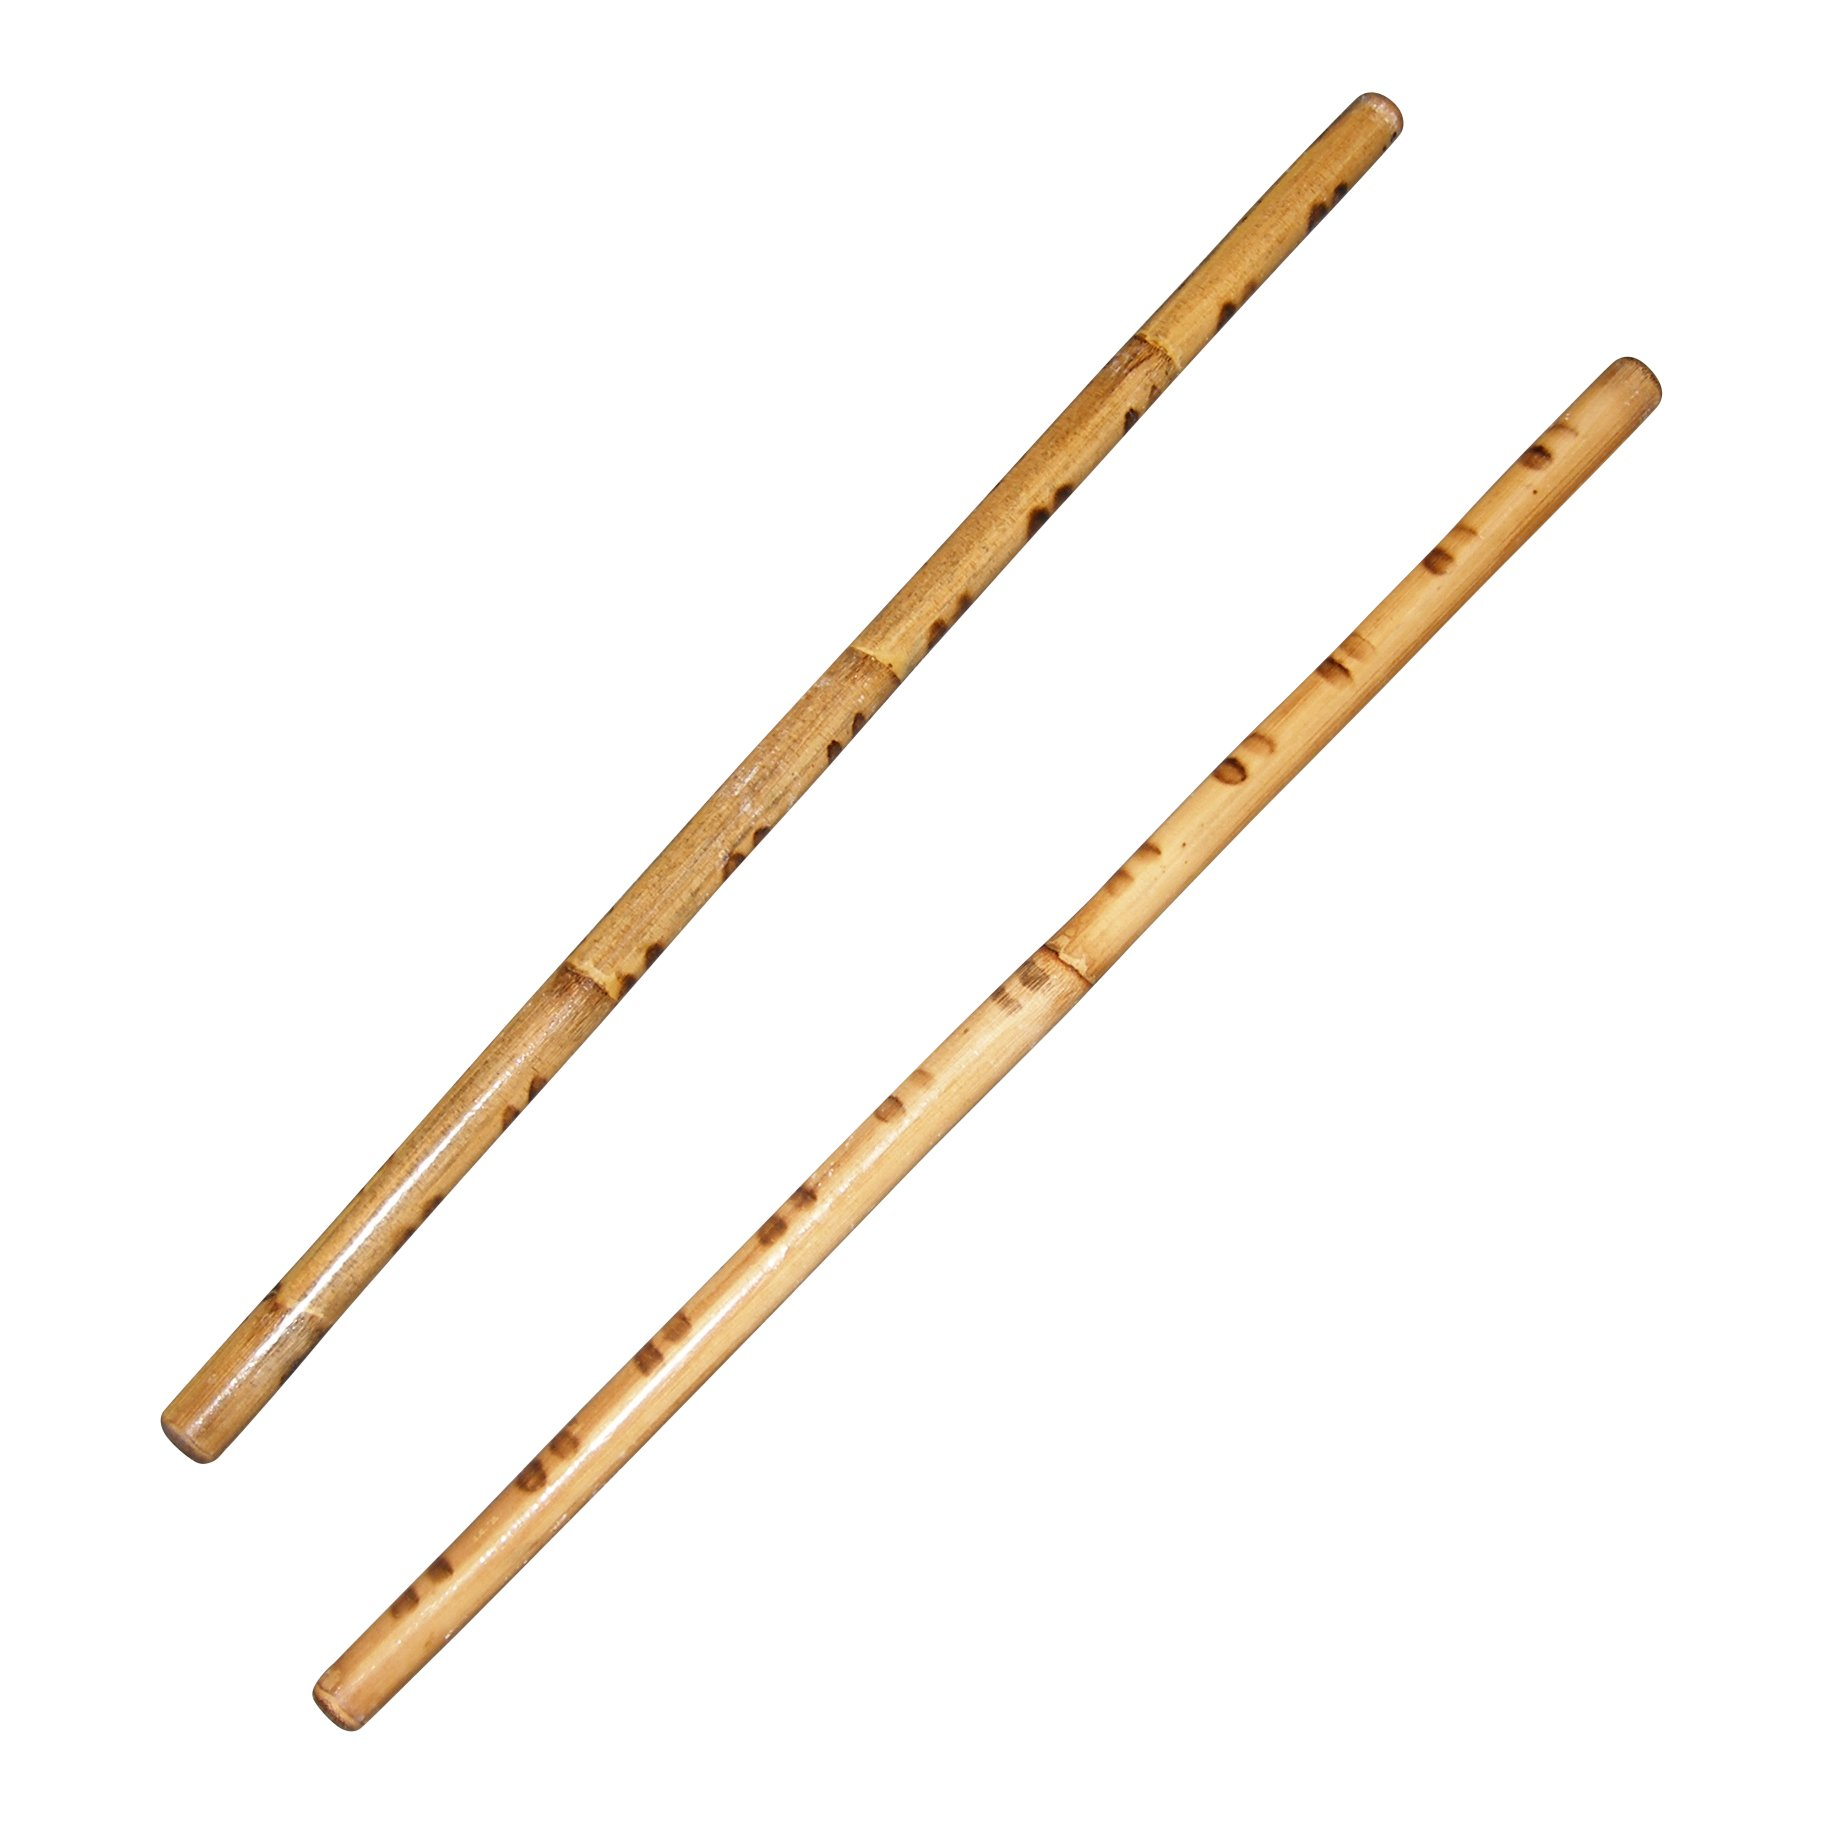 Deluxe Filipino Syatong Chato Game - 2 Rattan Stick Sets: 2pc - 29'' & 2pc - 8'' larong, pinoy by Deluxe Shatong (Image #2)